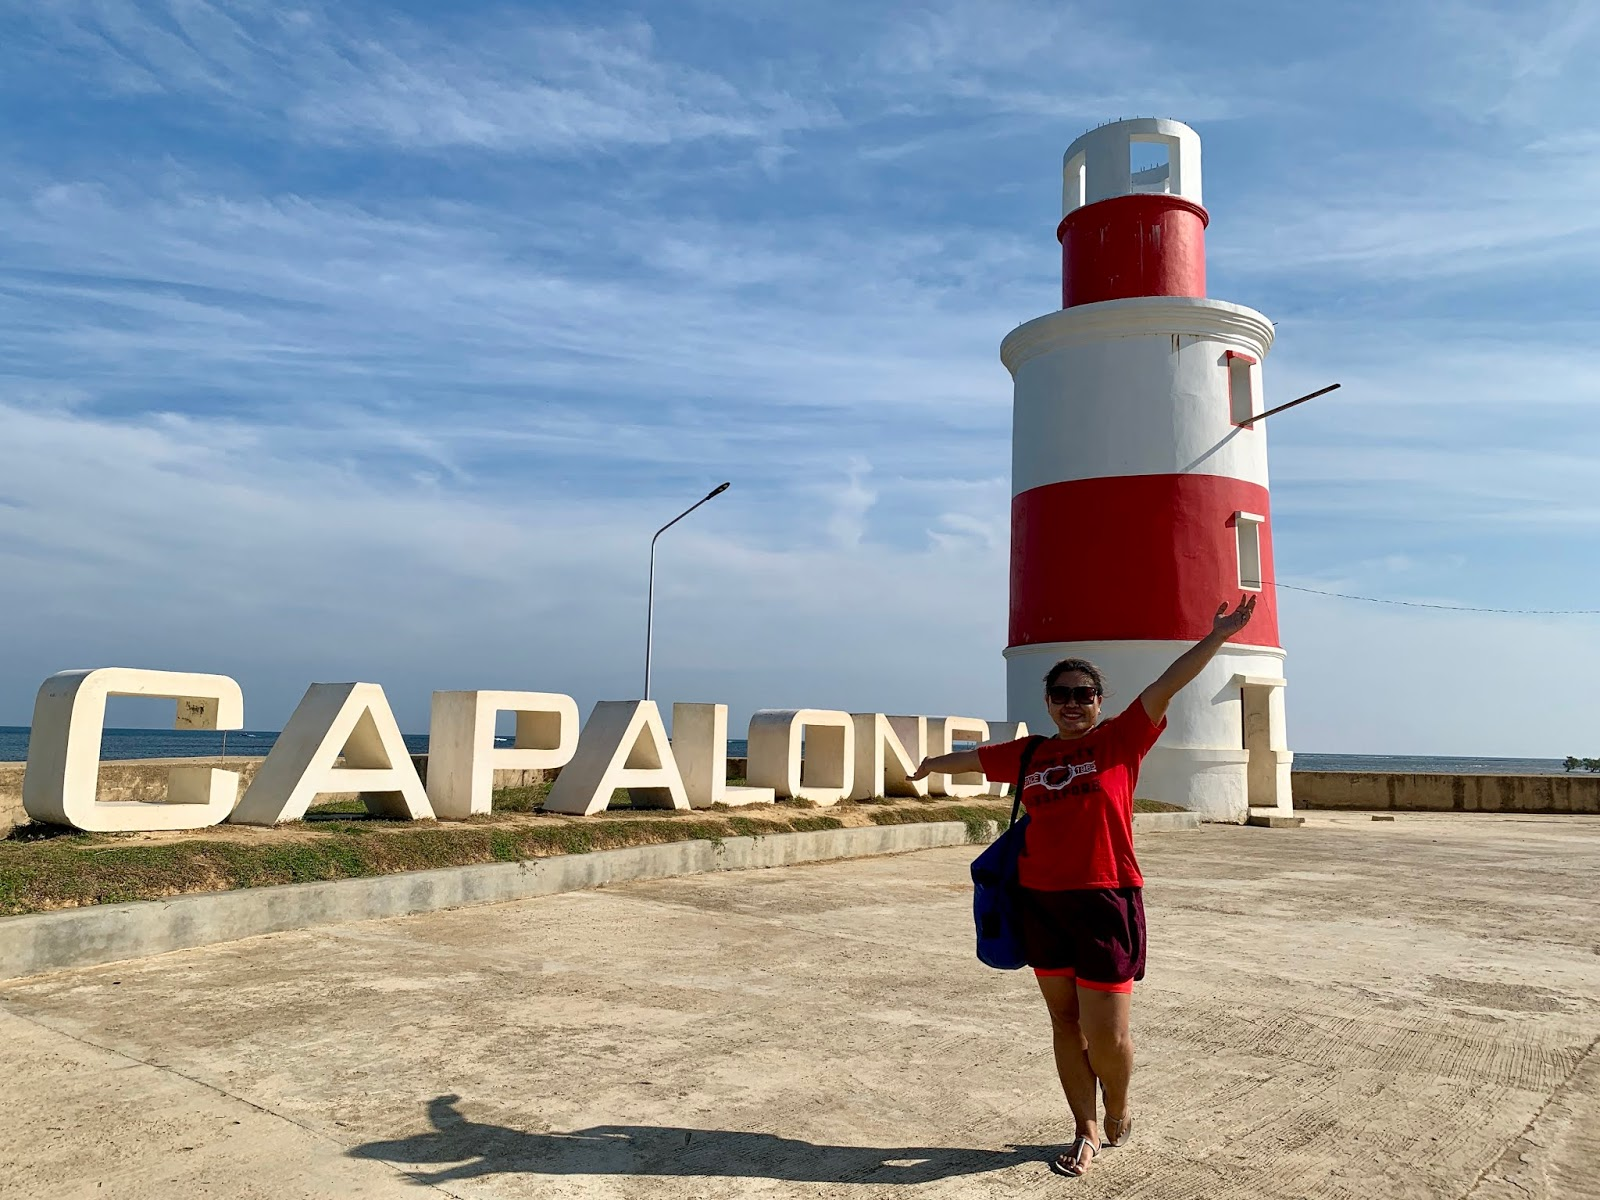 Capalonga Sign and Lightouse